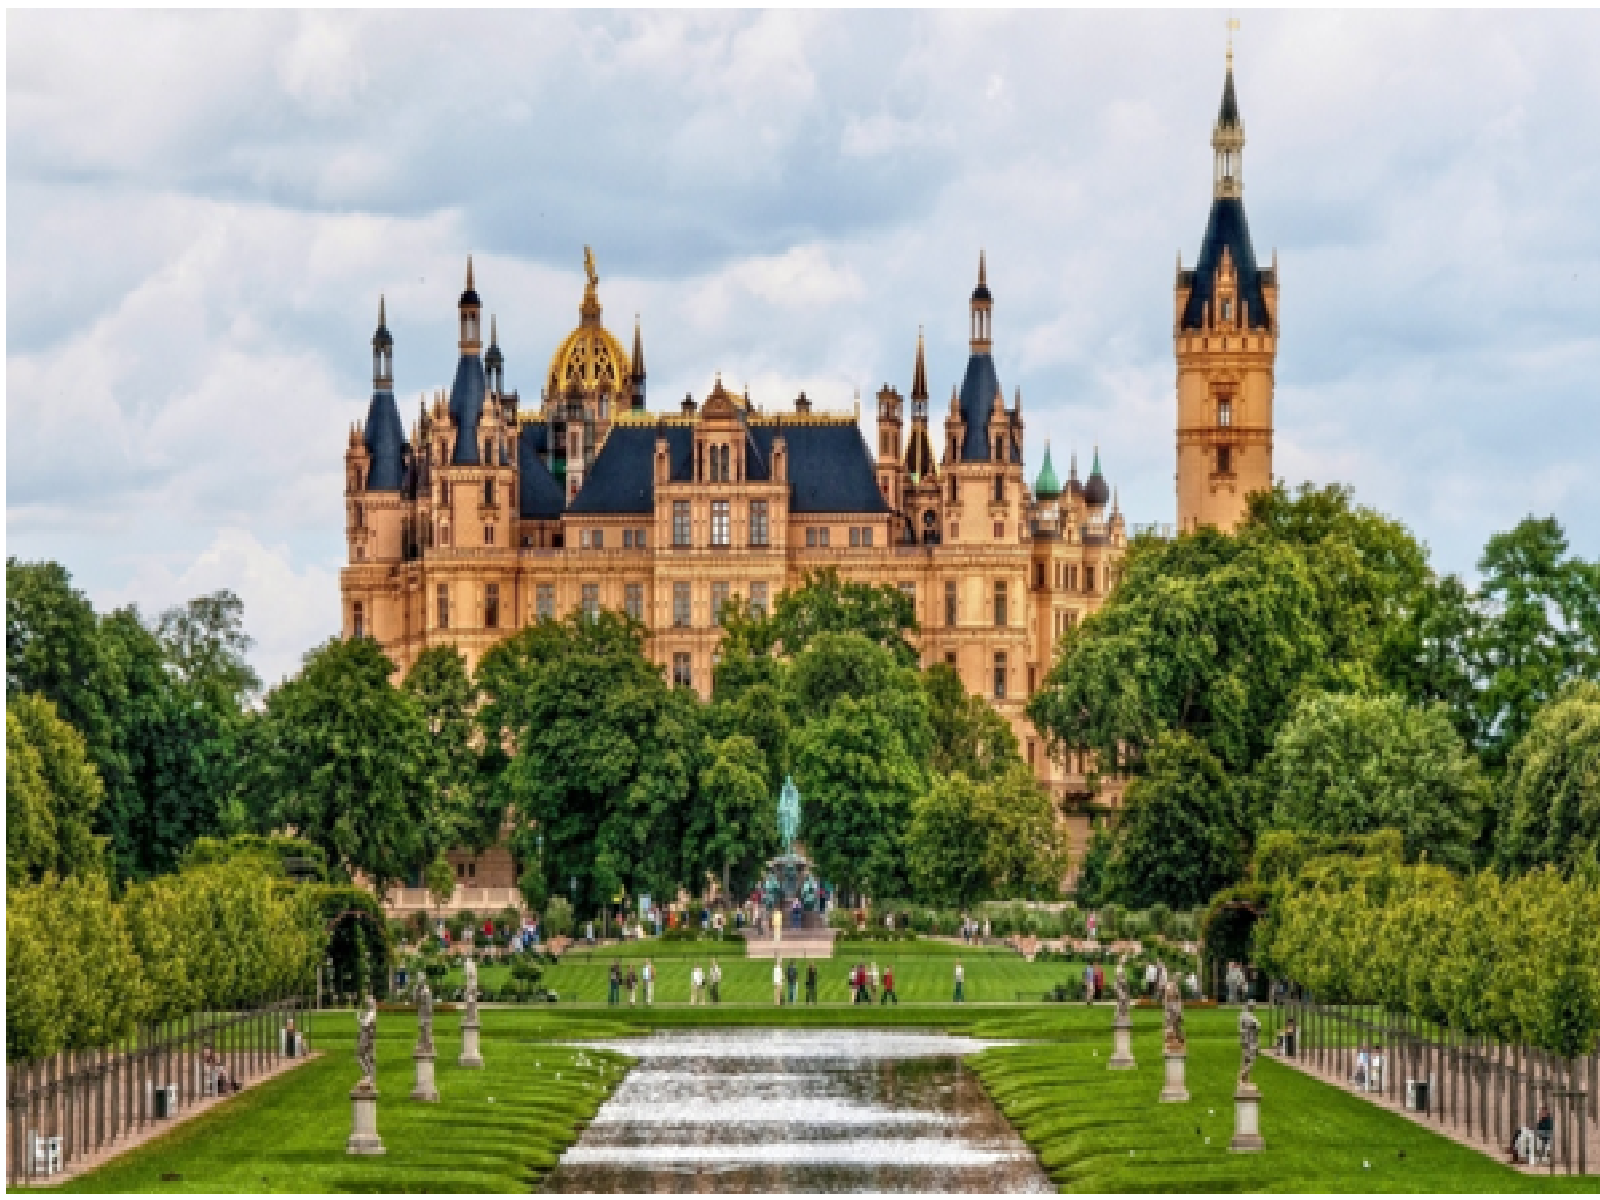 The Schwerin Palace, Germany